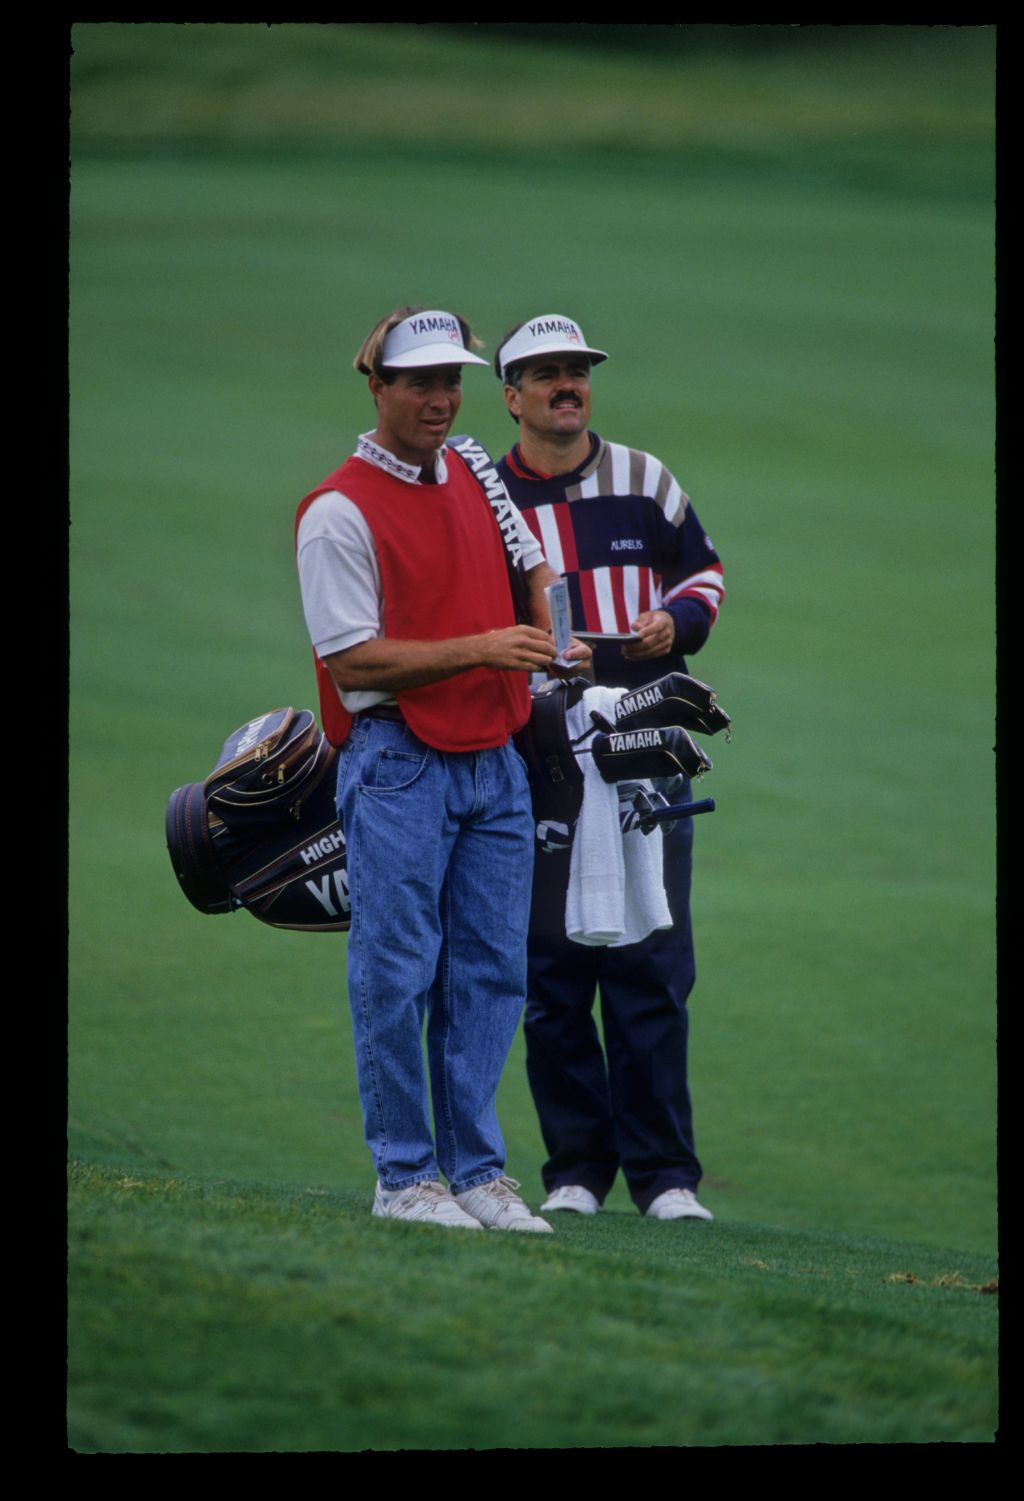 Scott Simpson and his caddie checking yardages during the 1992 US Open